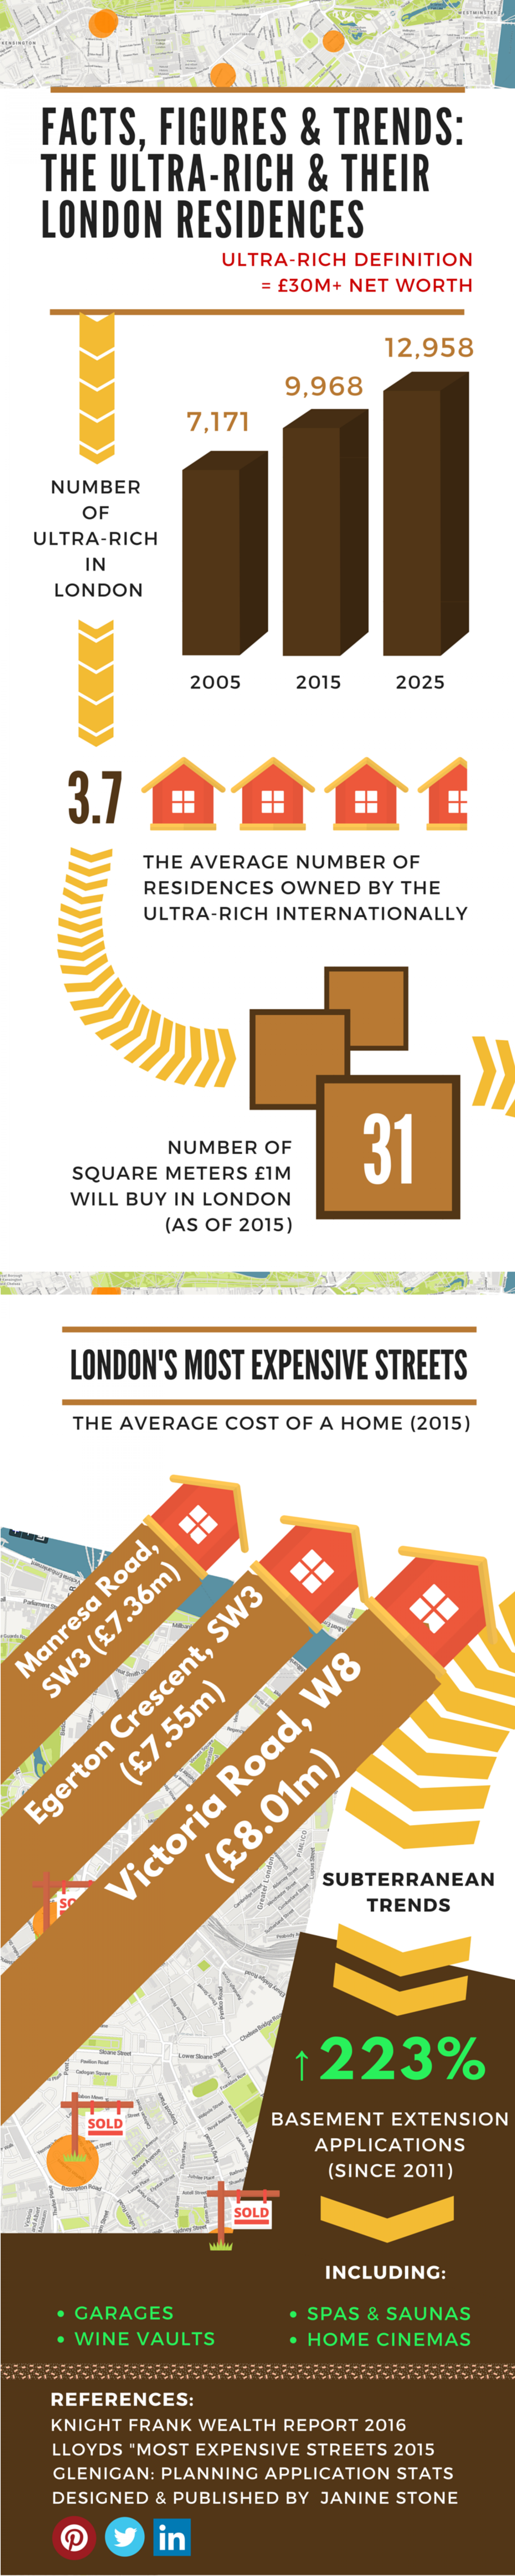 The Most Expensive Streets in London Infographic